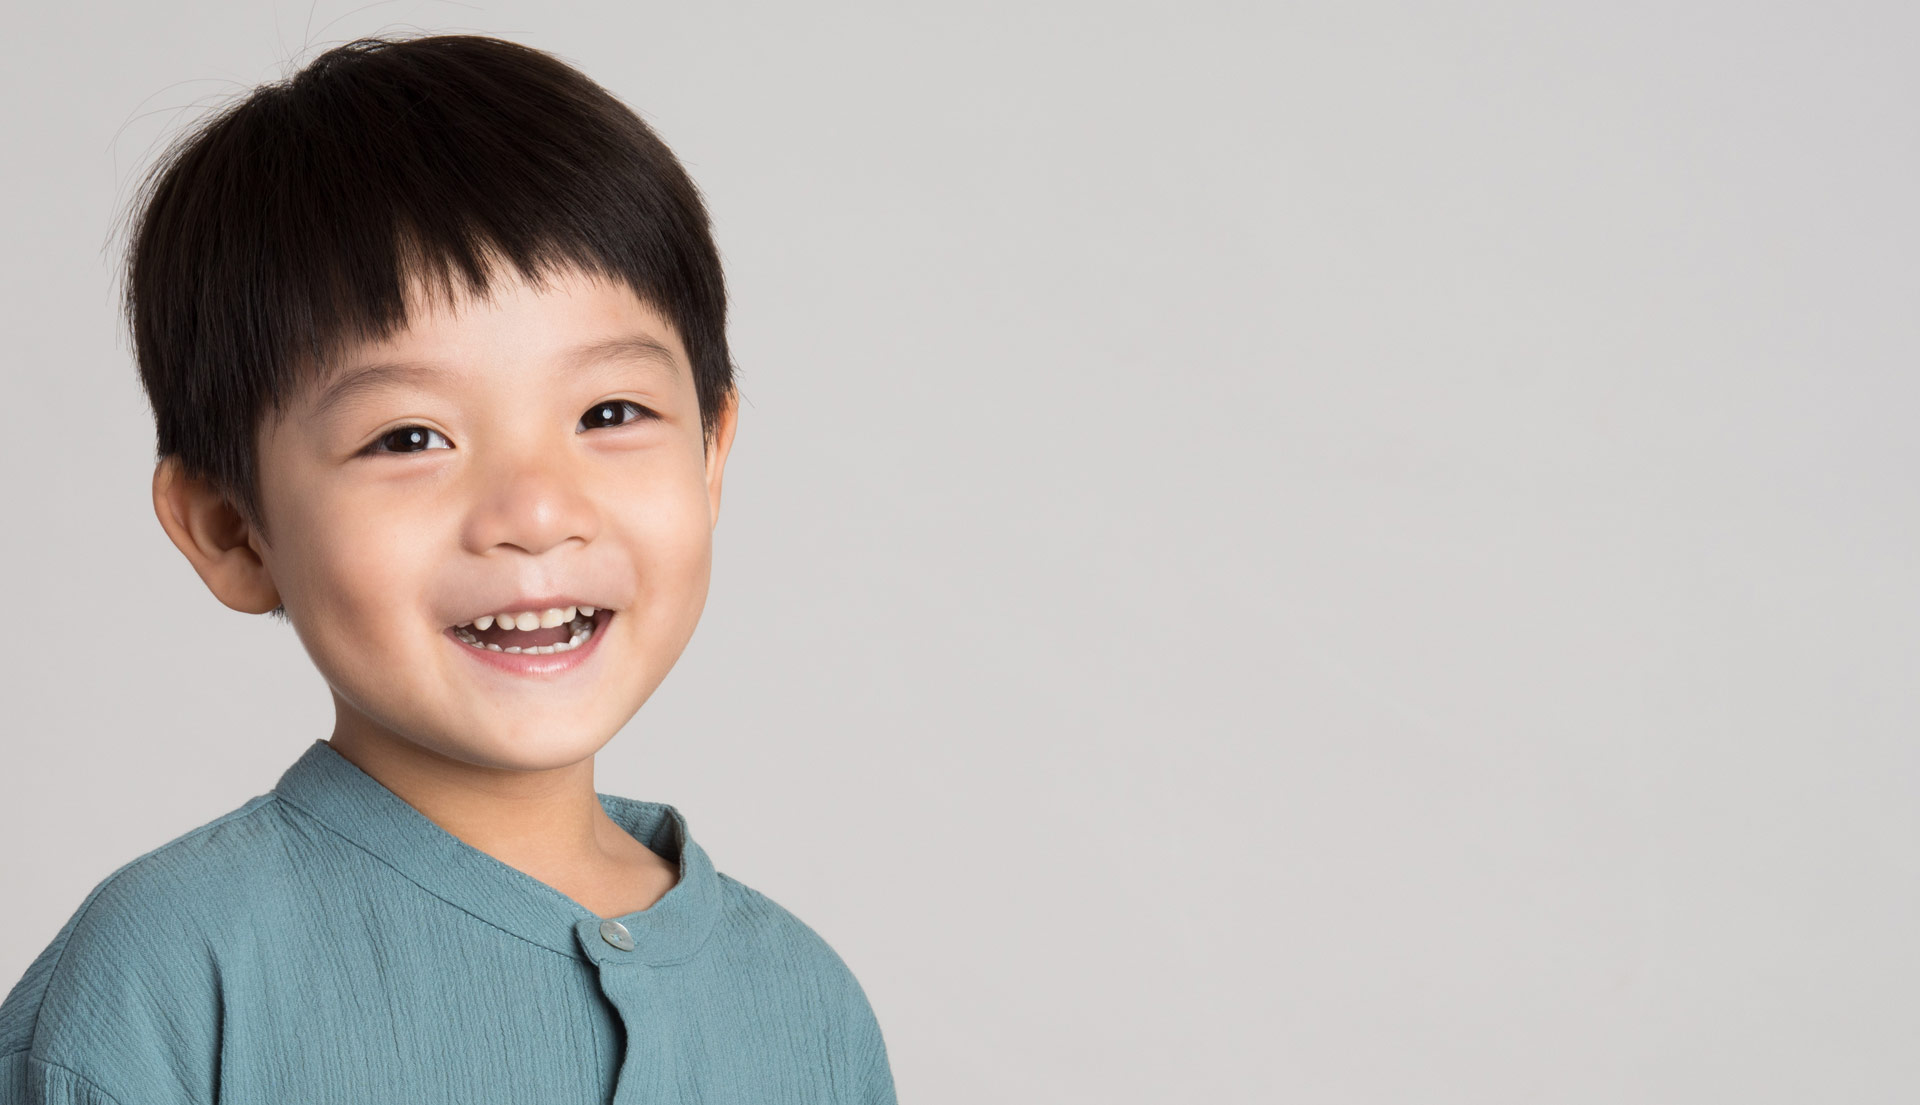 Young Asian American boy smiling with healthy teeth